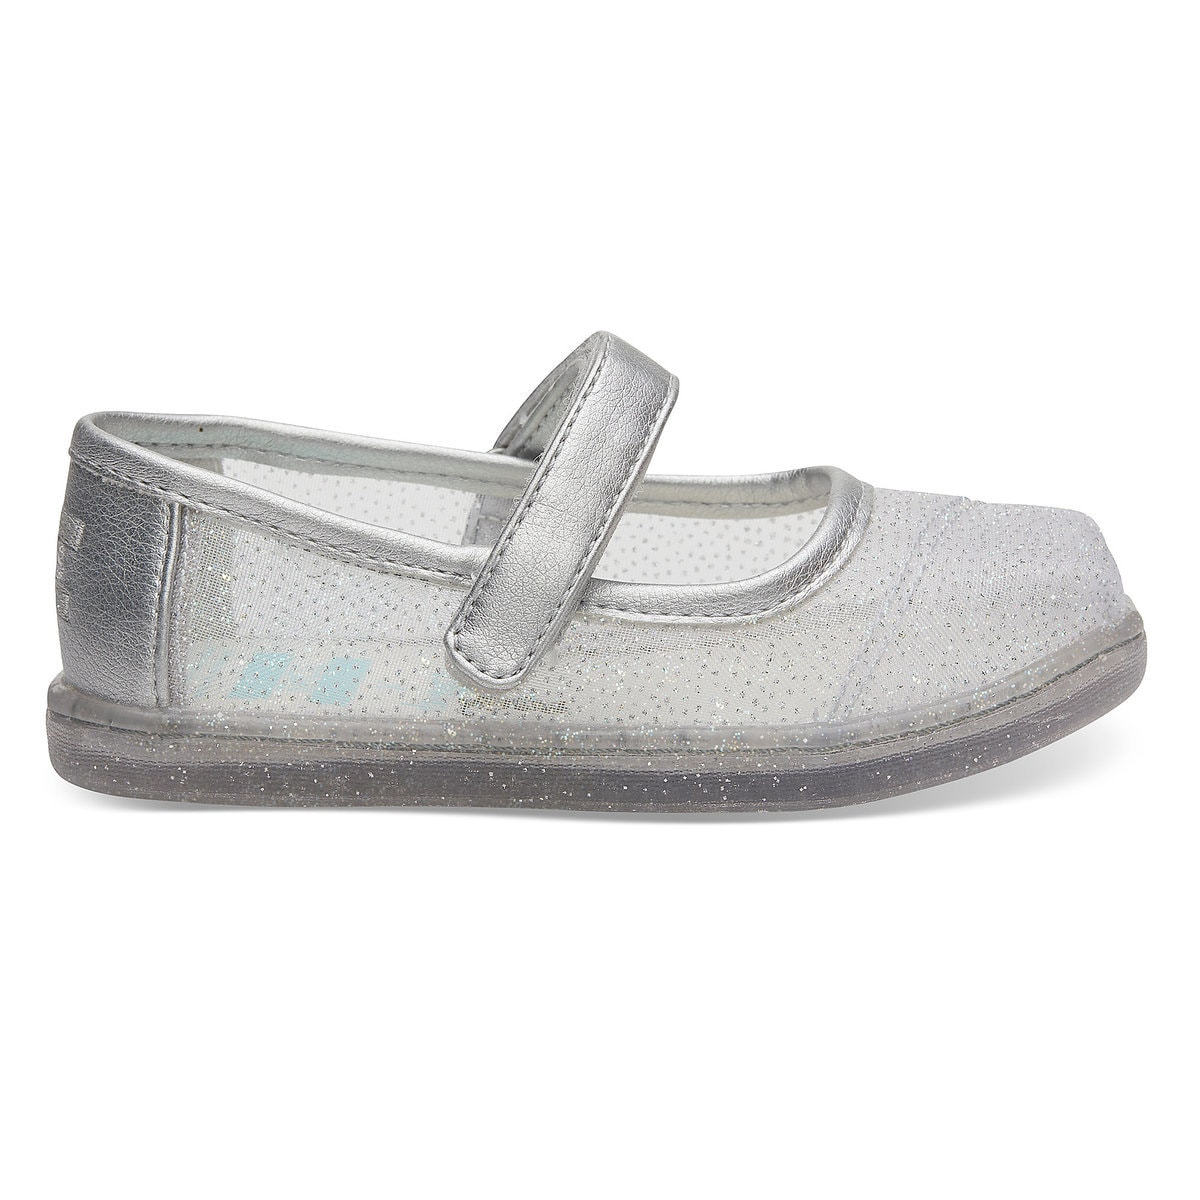 5549352acc7f Product Image of Gus and Jaq Glitter Mesh Mary Janes for Baby by TOMS -  Cinderella